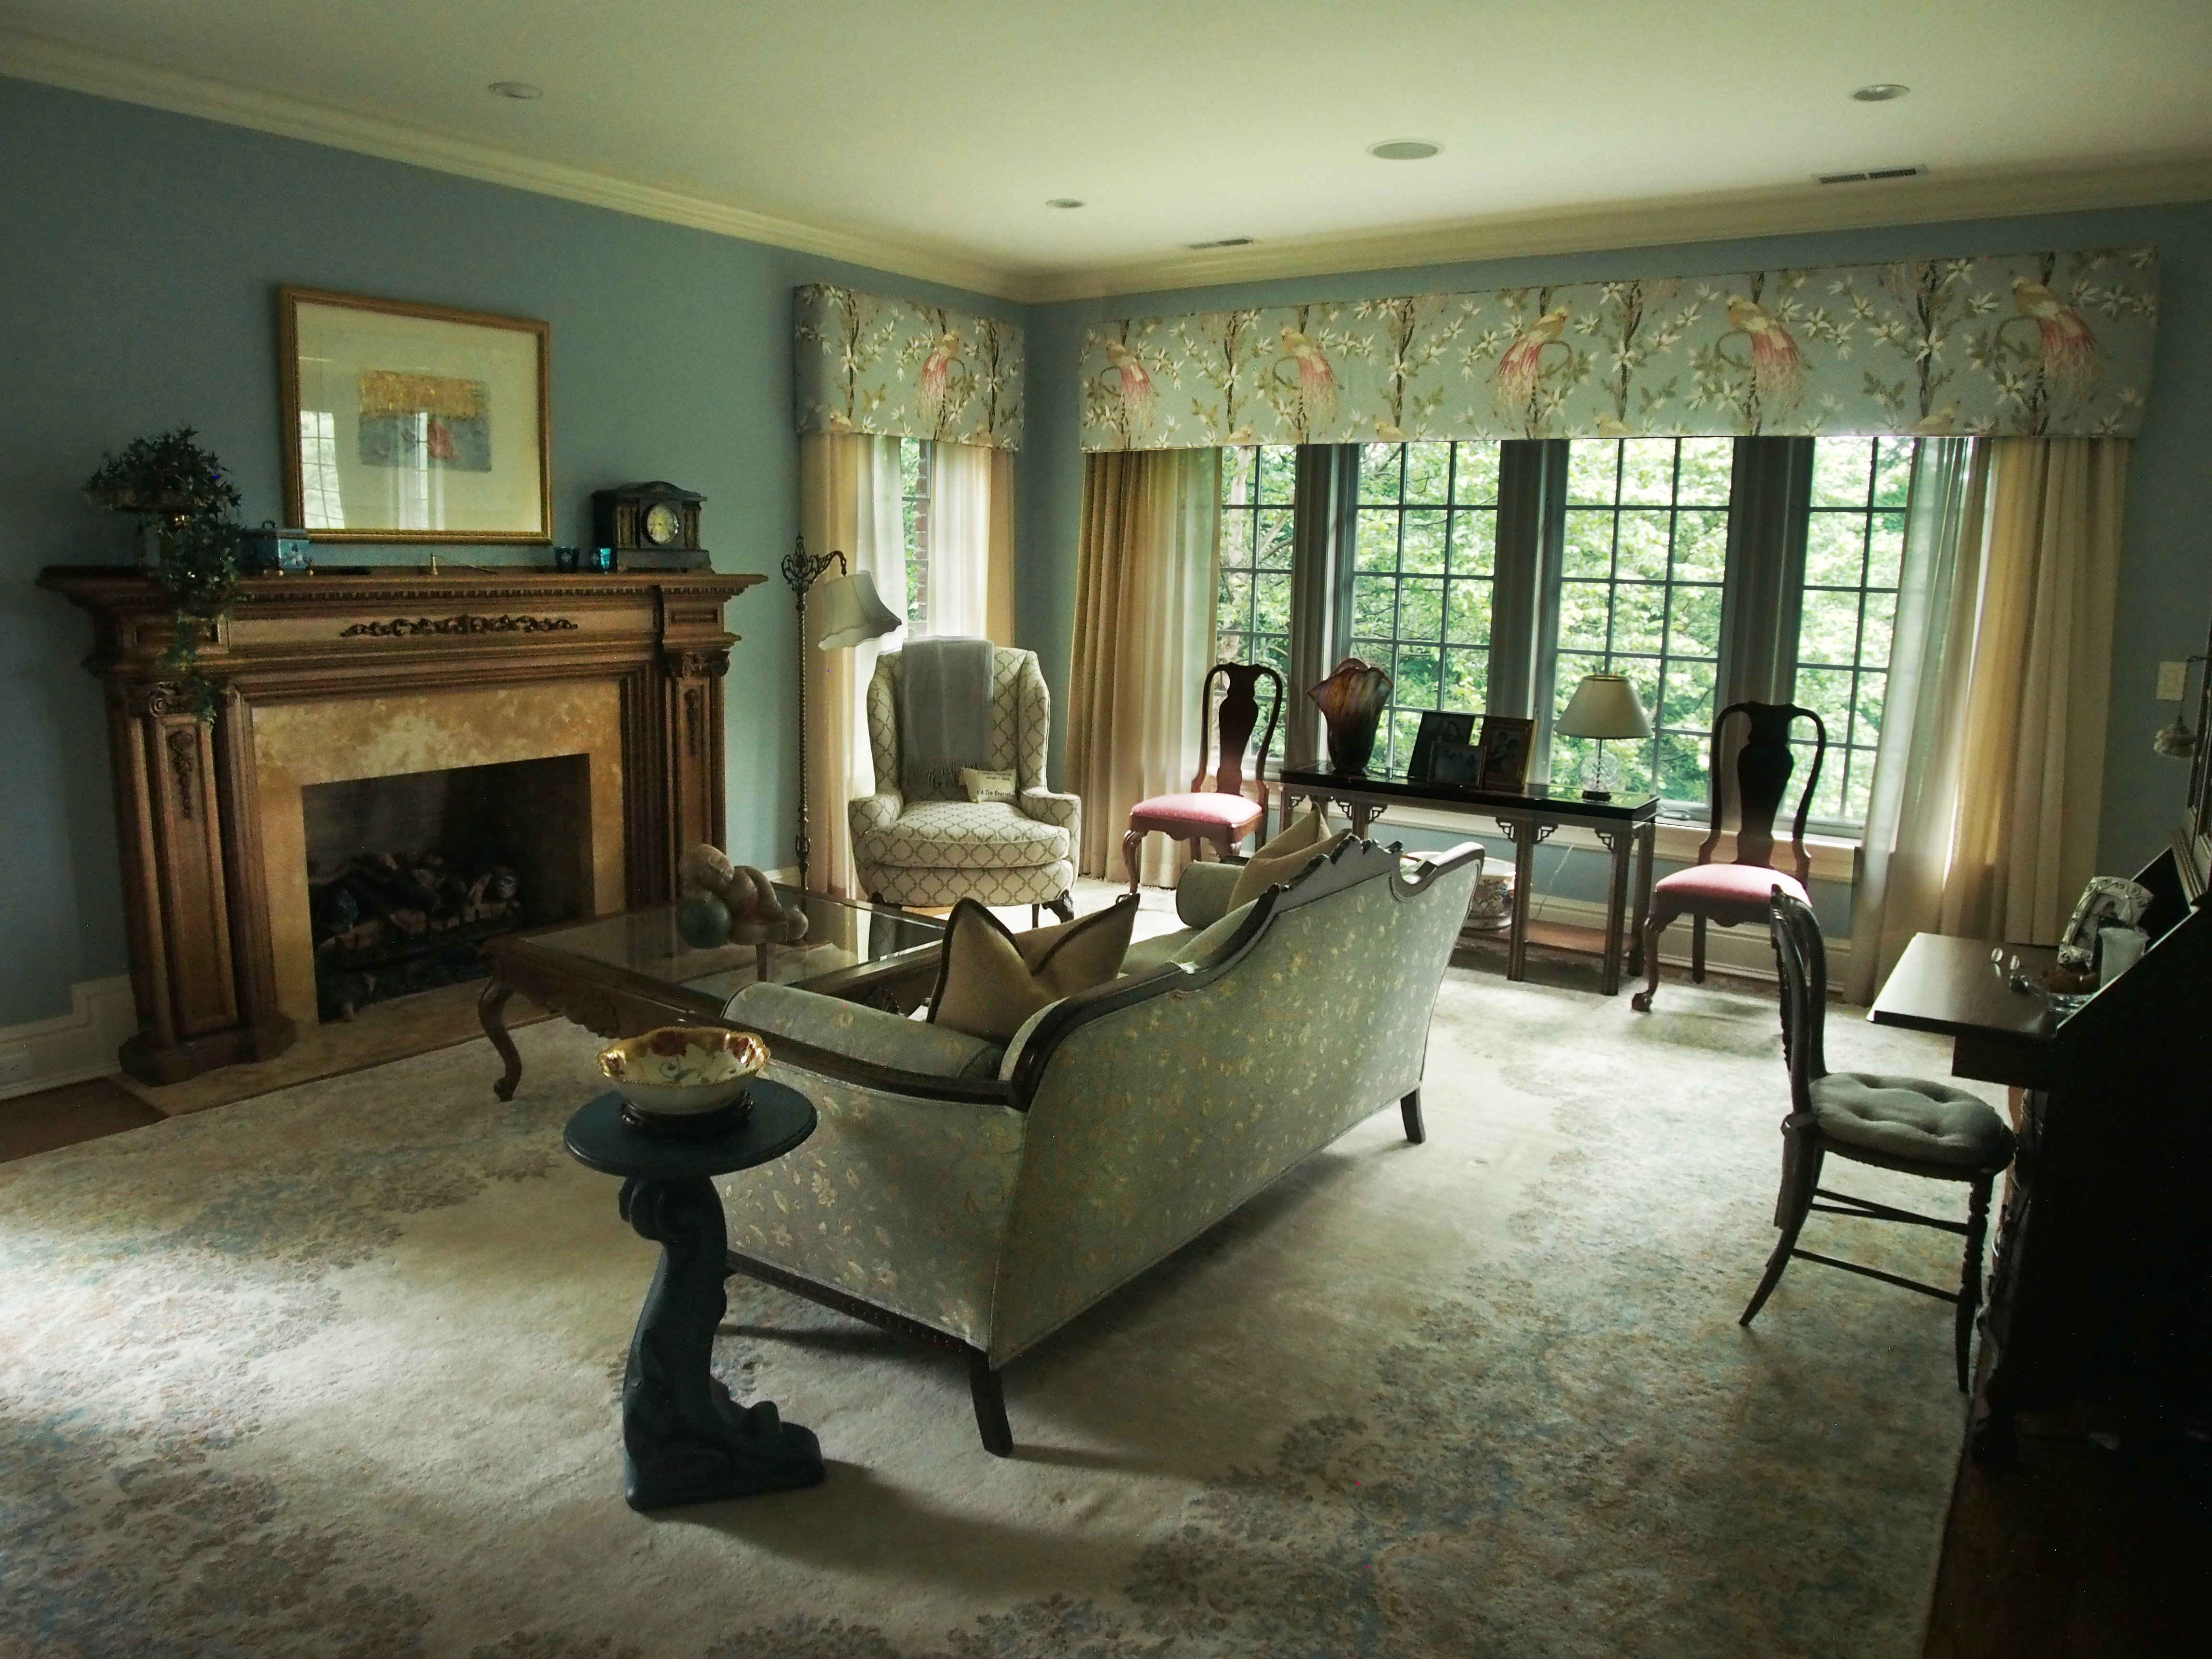 Stately in Armonk, The Family Room